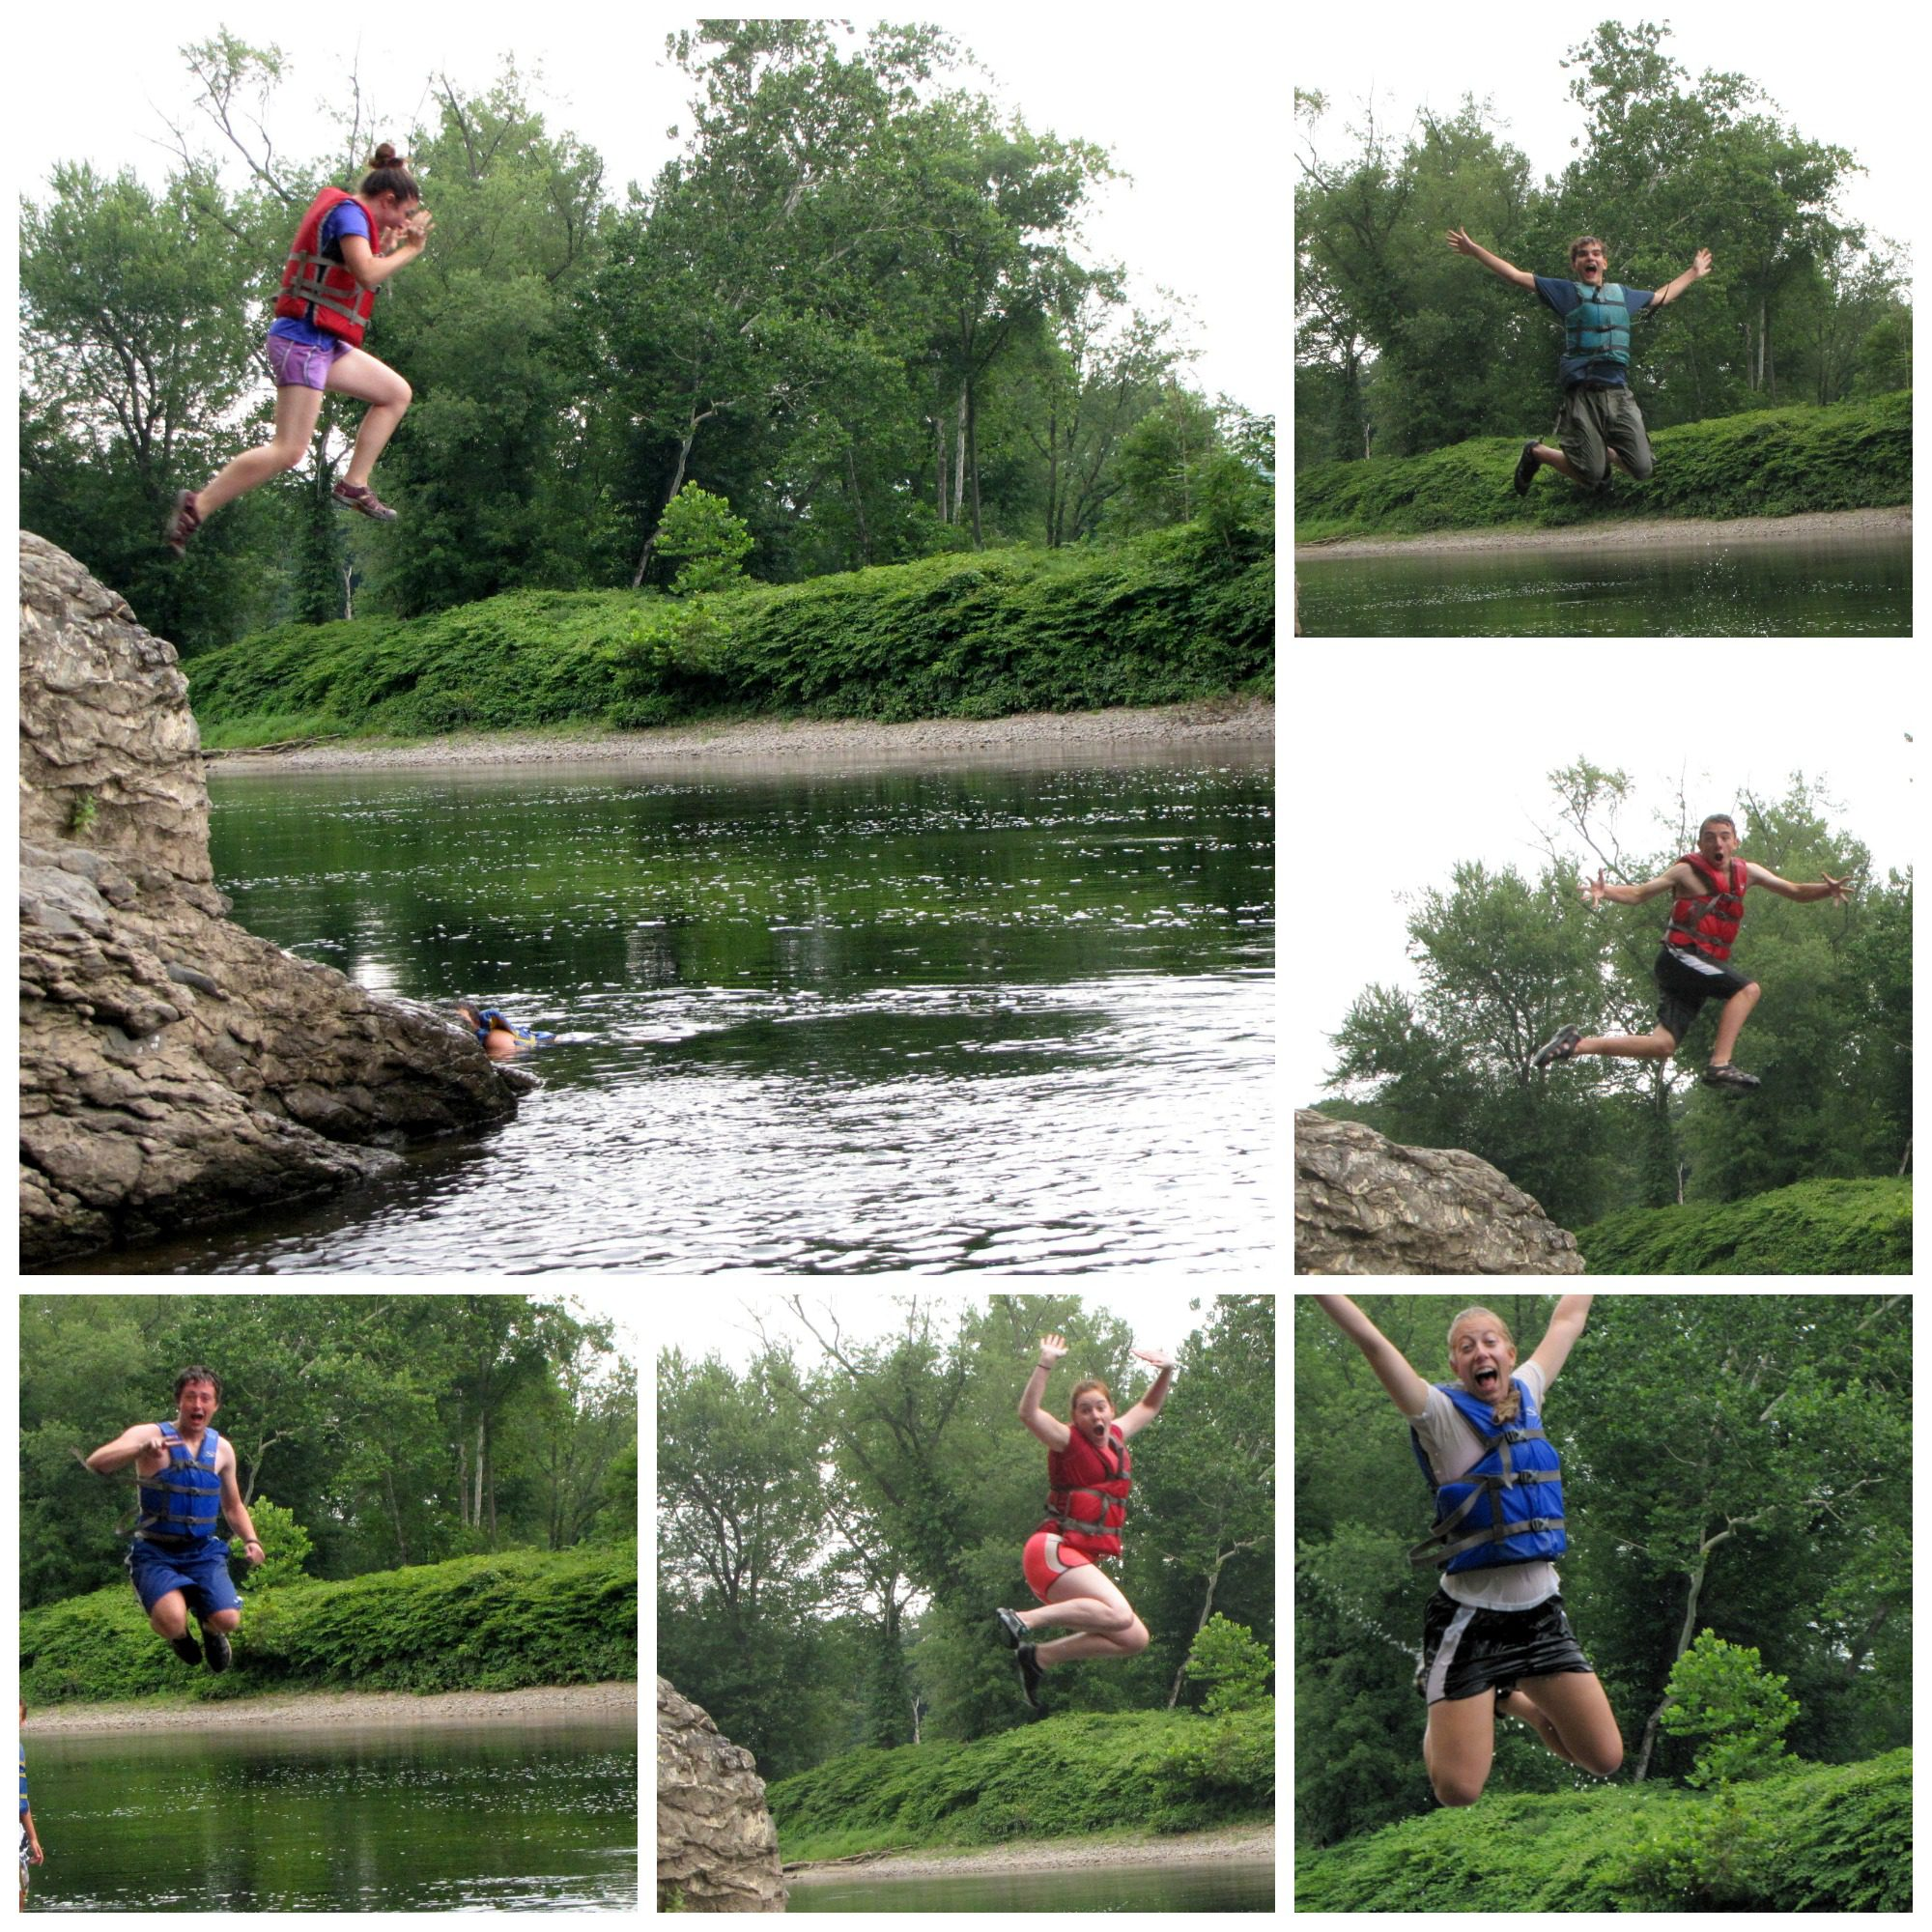 We found a deep swimming hole and a high rock to leap into it.  Photos by Dan Kenney.